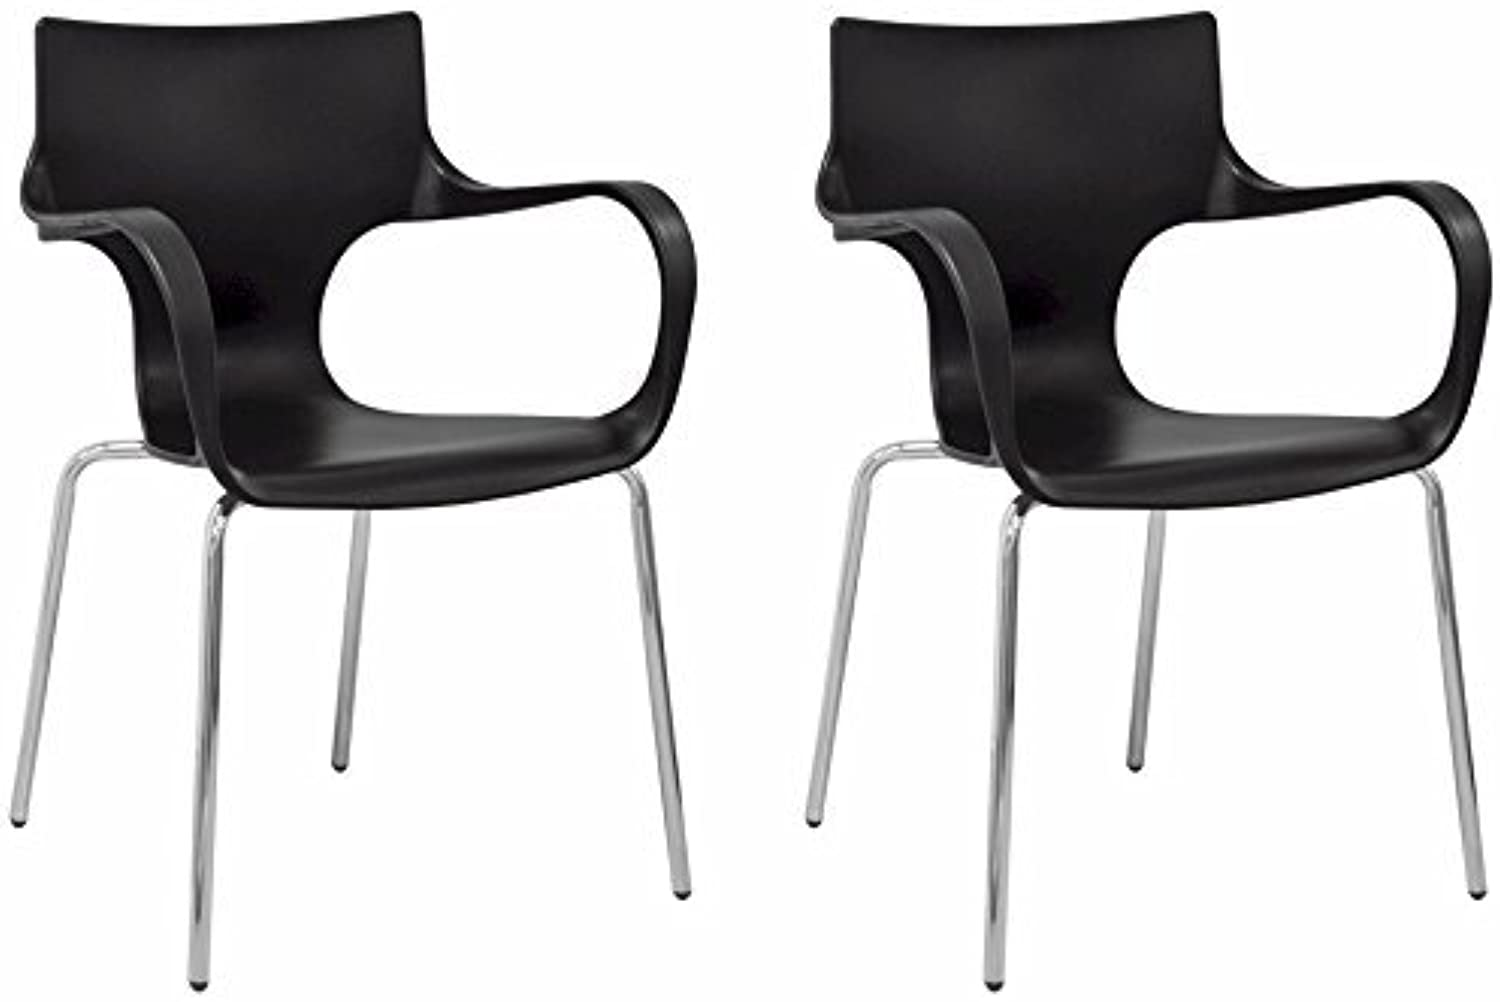 Mod Made Modern Contermporary Phin Arm Chair Dining Chair, Black, Set of 2